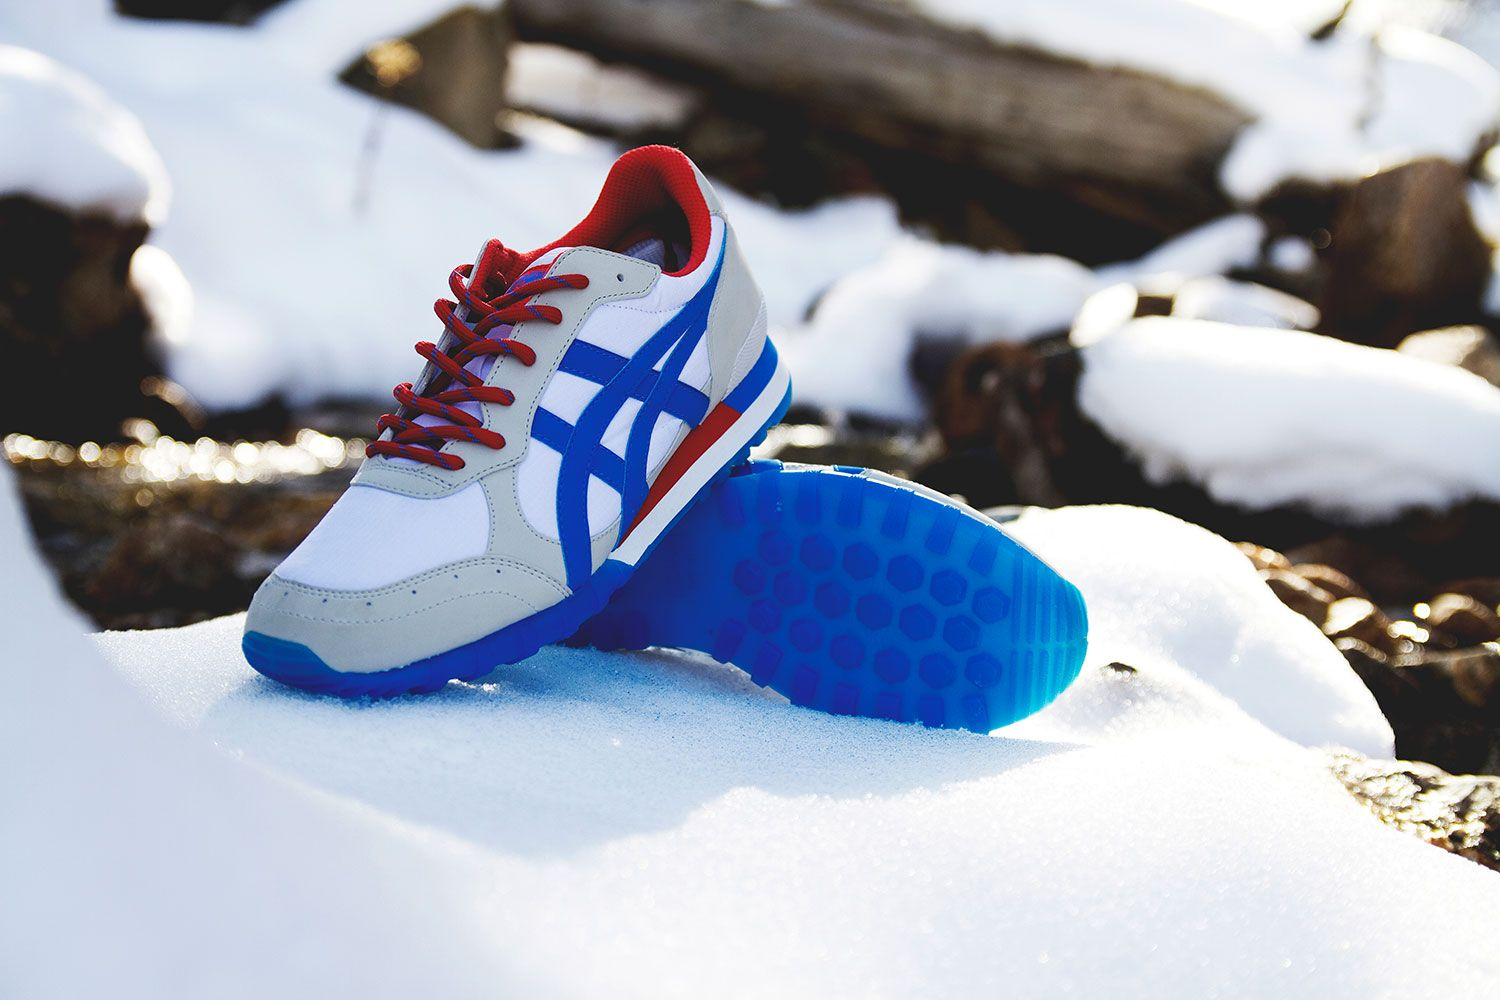 Onitsuka Tiger X Bait By Akomplice 6 200 Ft